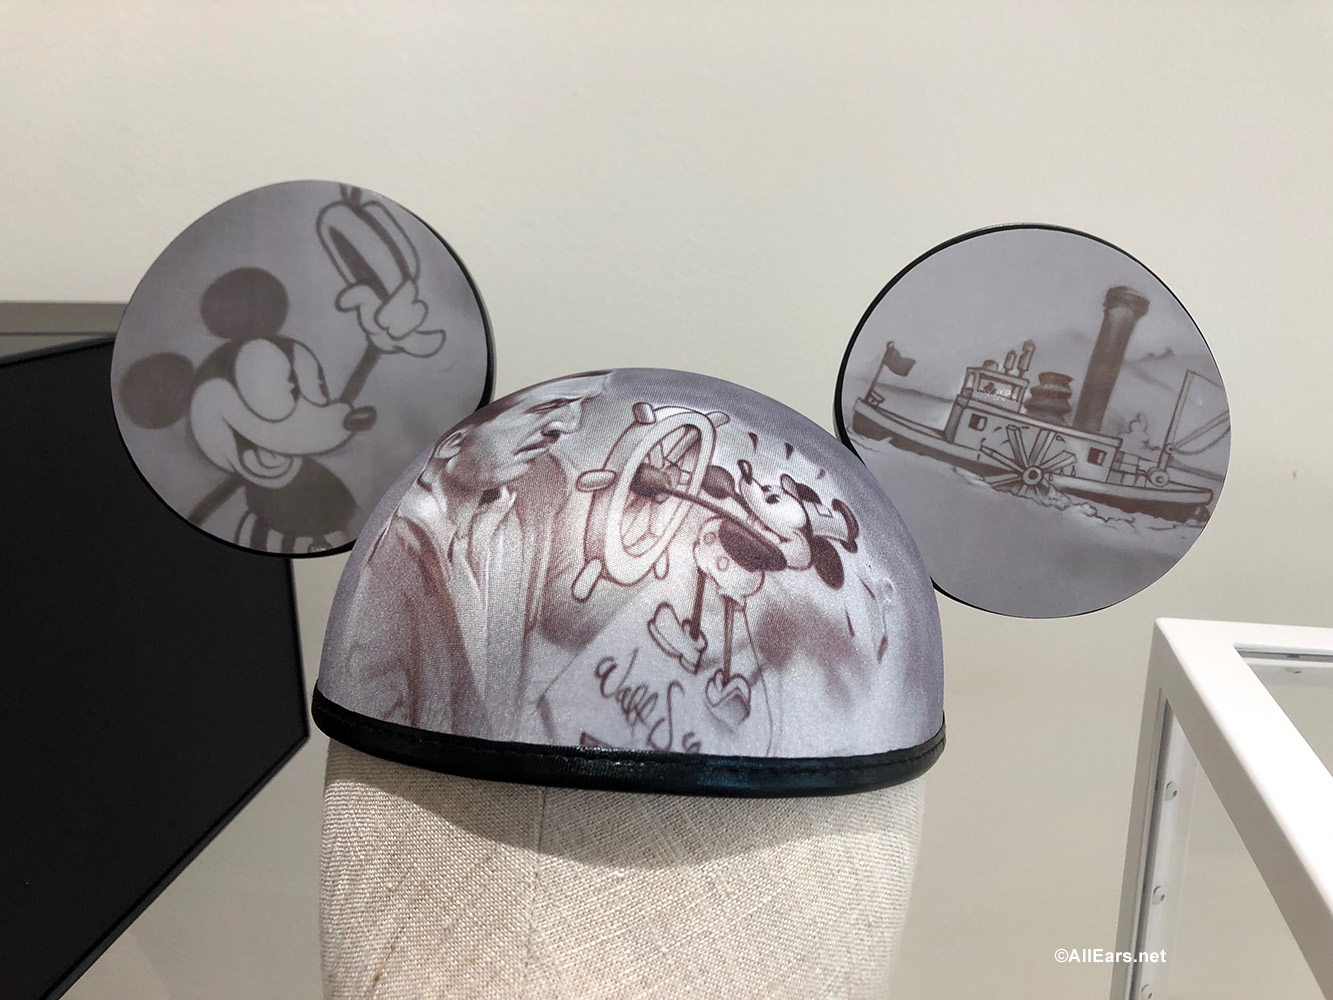 New Quot Full Steam Ahead Quot Ears Celebrating Walt And Steamboat